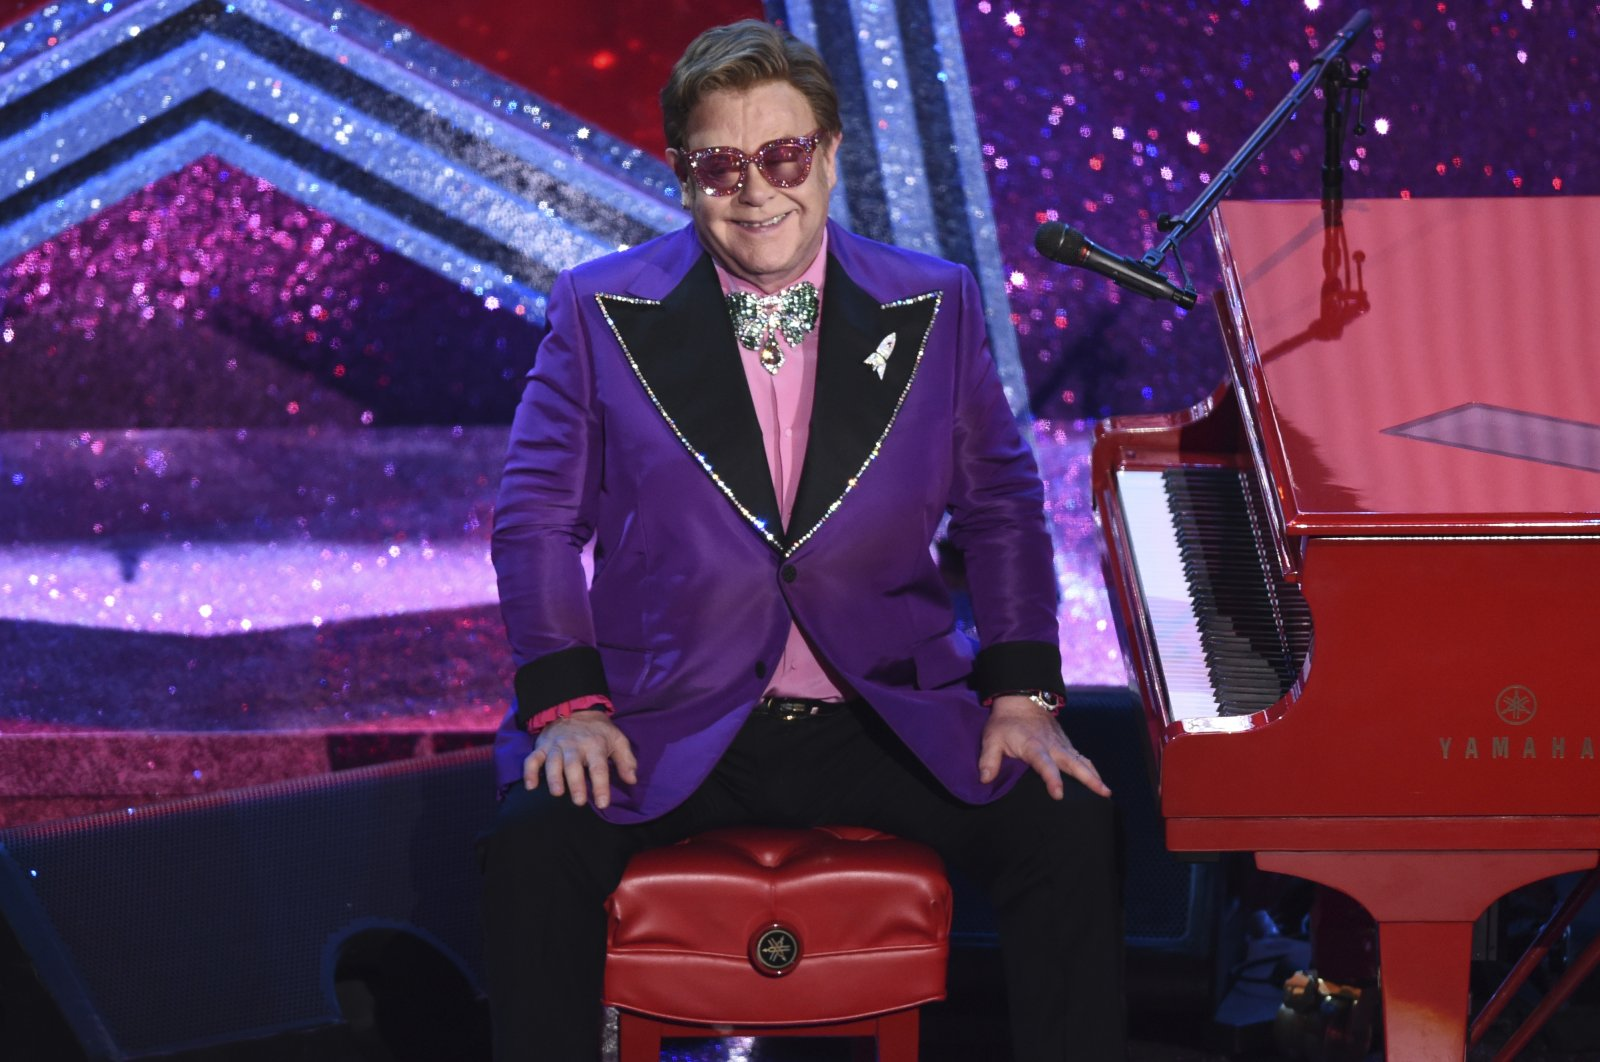 """Sir Elton John sits after performing """"(I'm Gonna) Love Me Again"""" from the film """"Rocketman,"""" which was nominated for the Best Original Song award at the Oscars, at the Dolby Theater, Los Angeles, U.S., Feb. 9, 2020. (AP Photo)"""